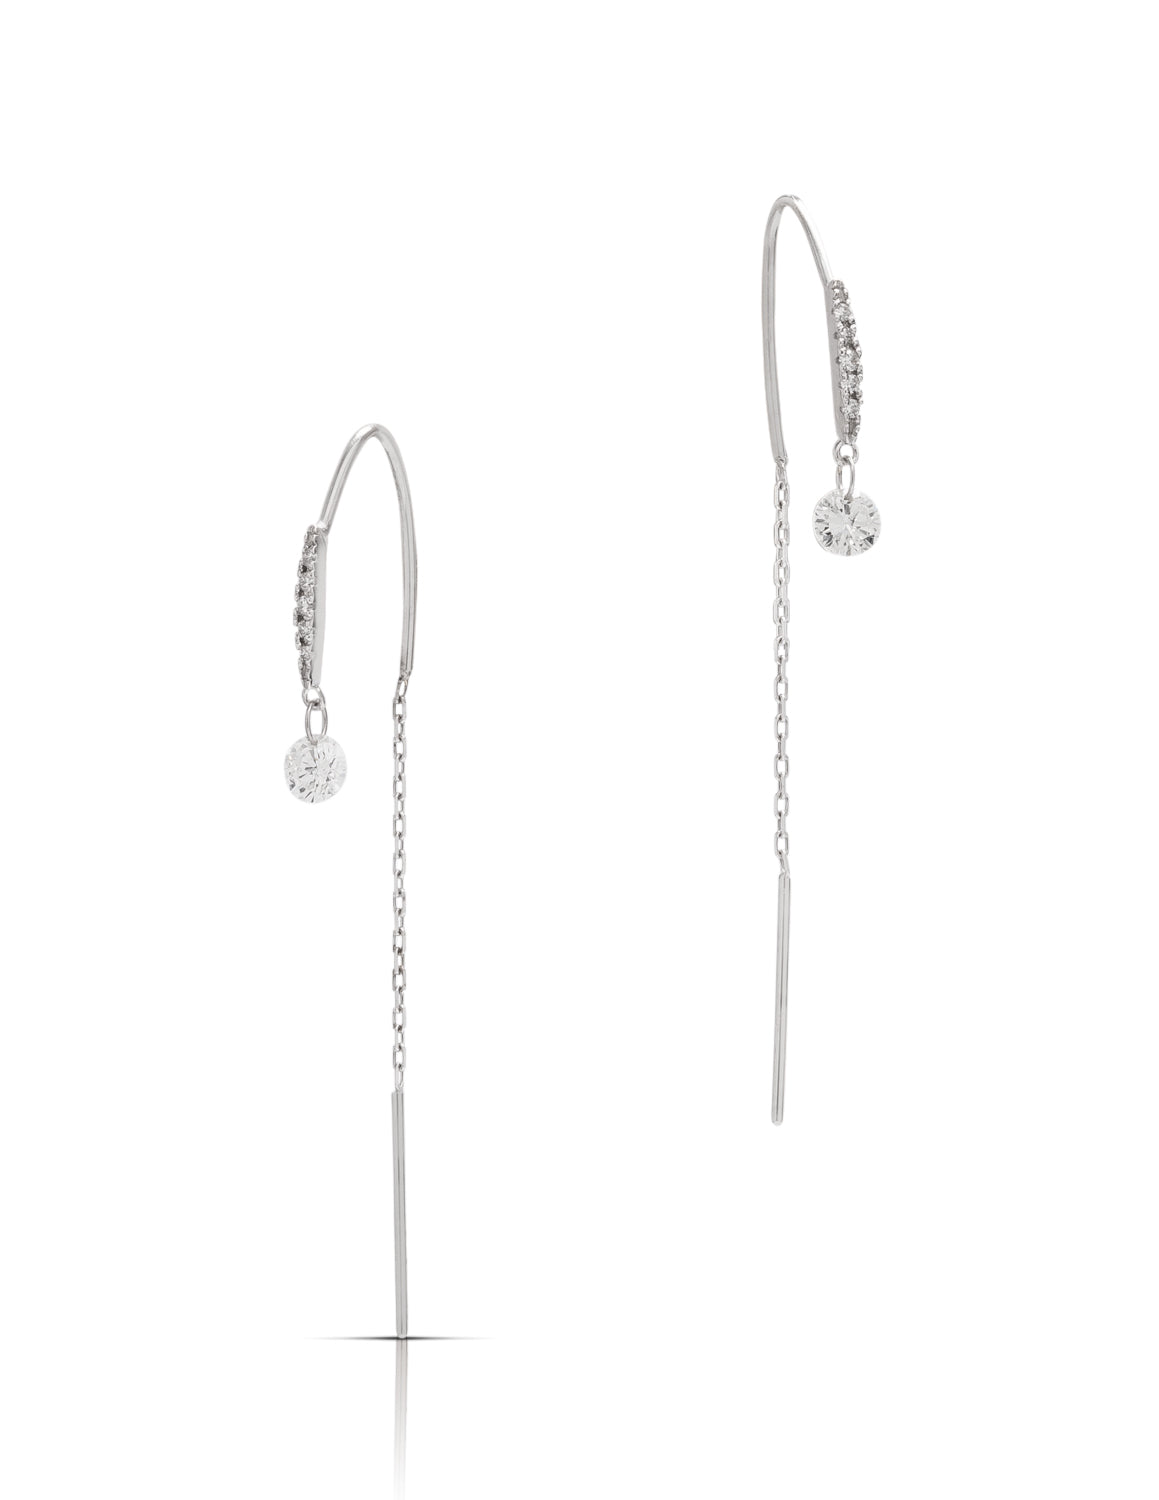 Diamond and White Gold Thread Through Earrings - Charles Koll Jewellers